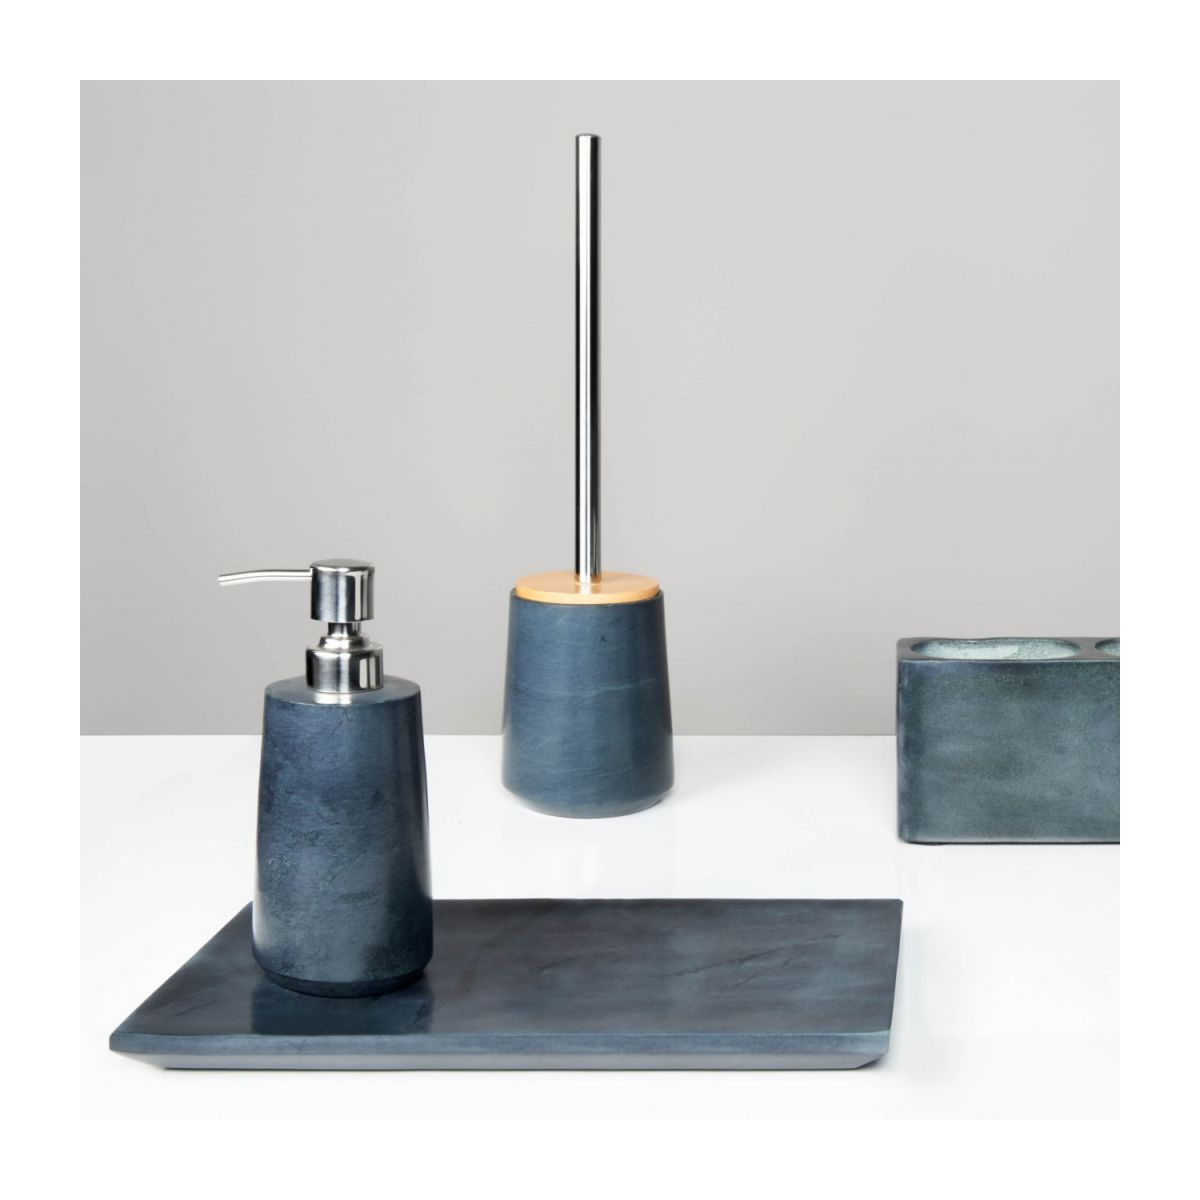 Grey soapstone toilet brush n°5